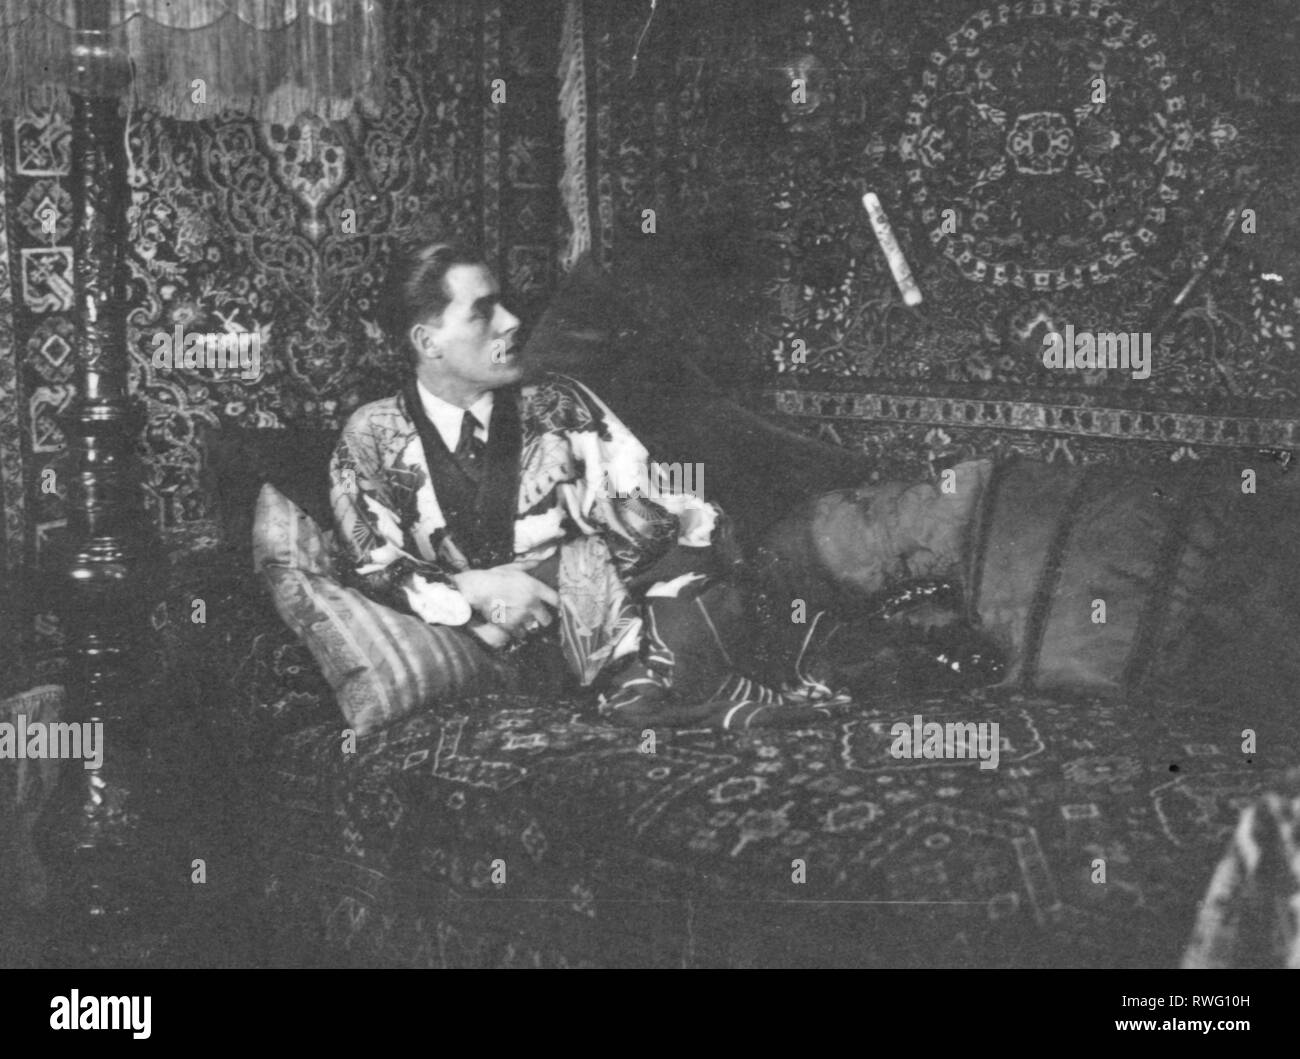 Schoedl, Georg, 1899 - 1981, German photographer, full length, in oriental decor, 1940s, Additional-Rights-Clearance-Info-Not-Available - Stock Image